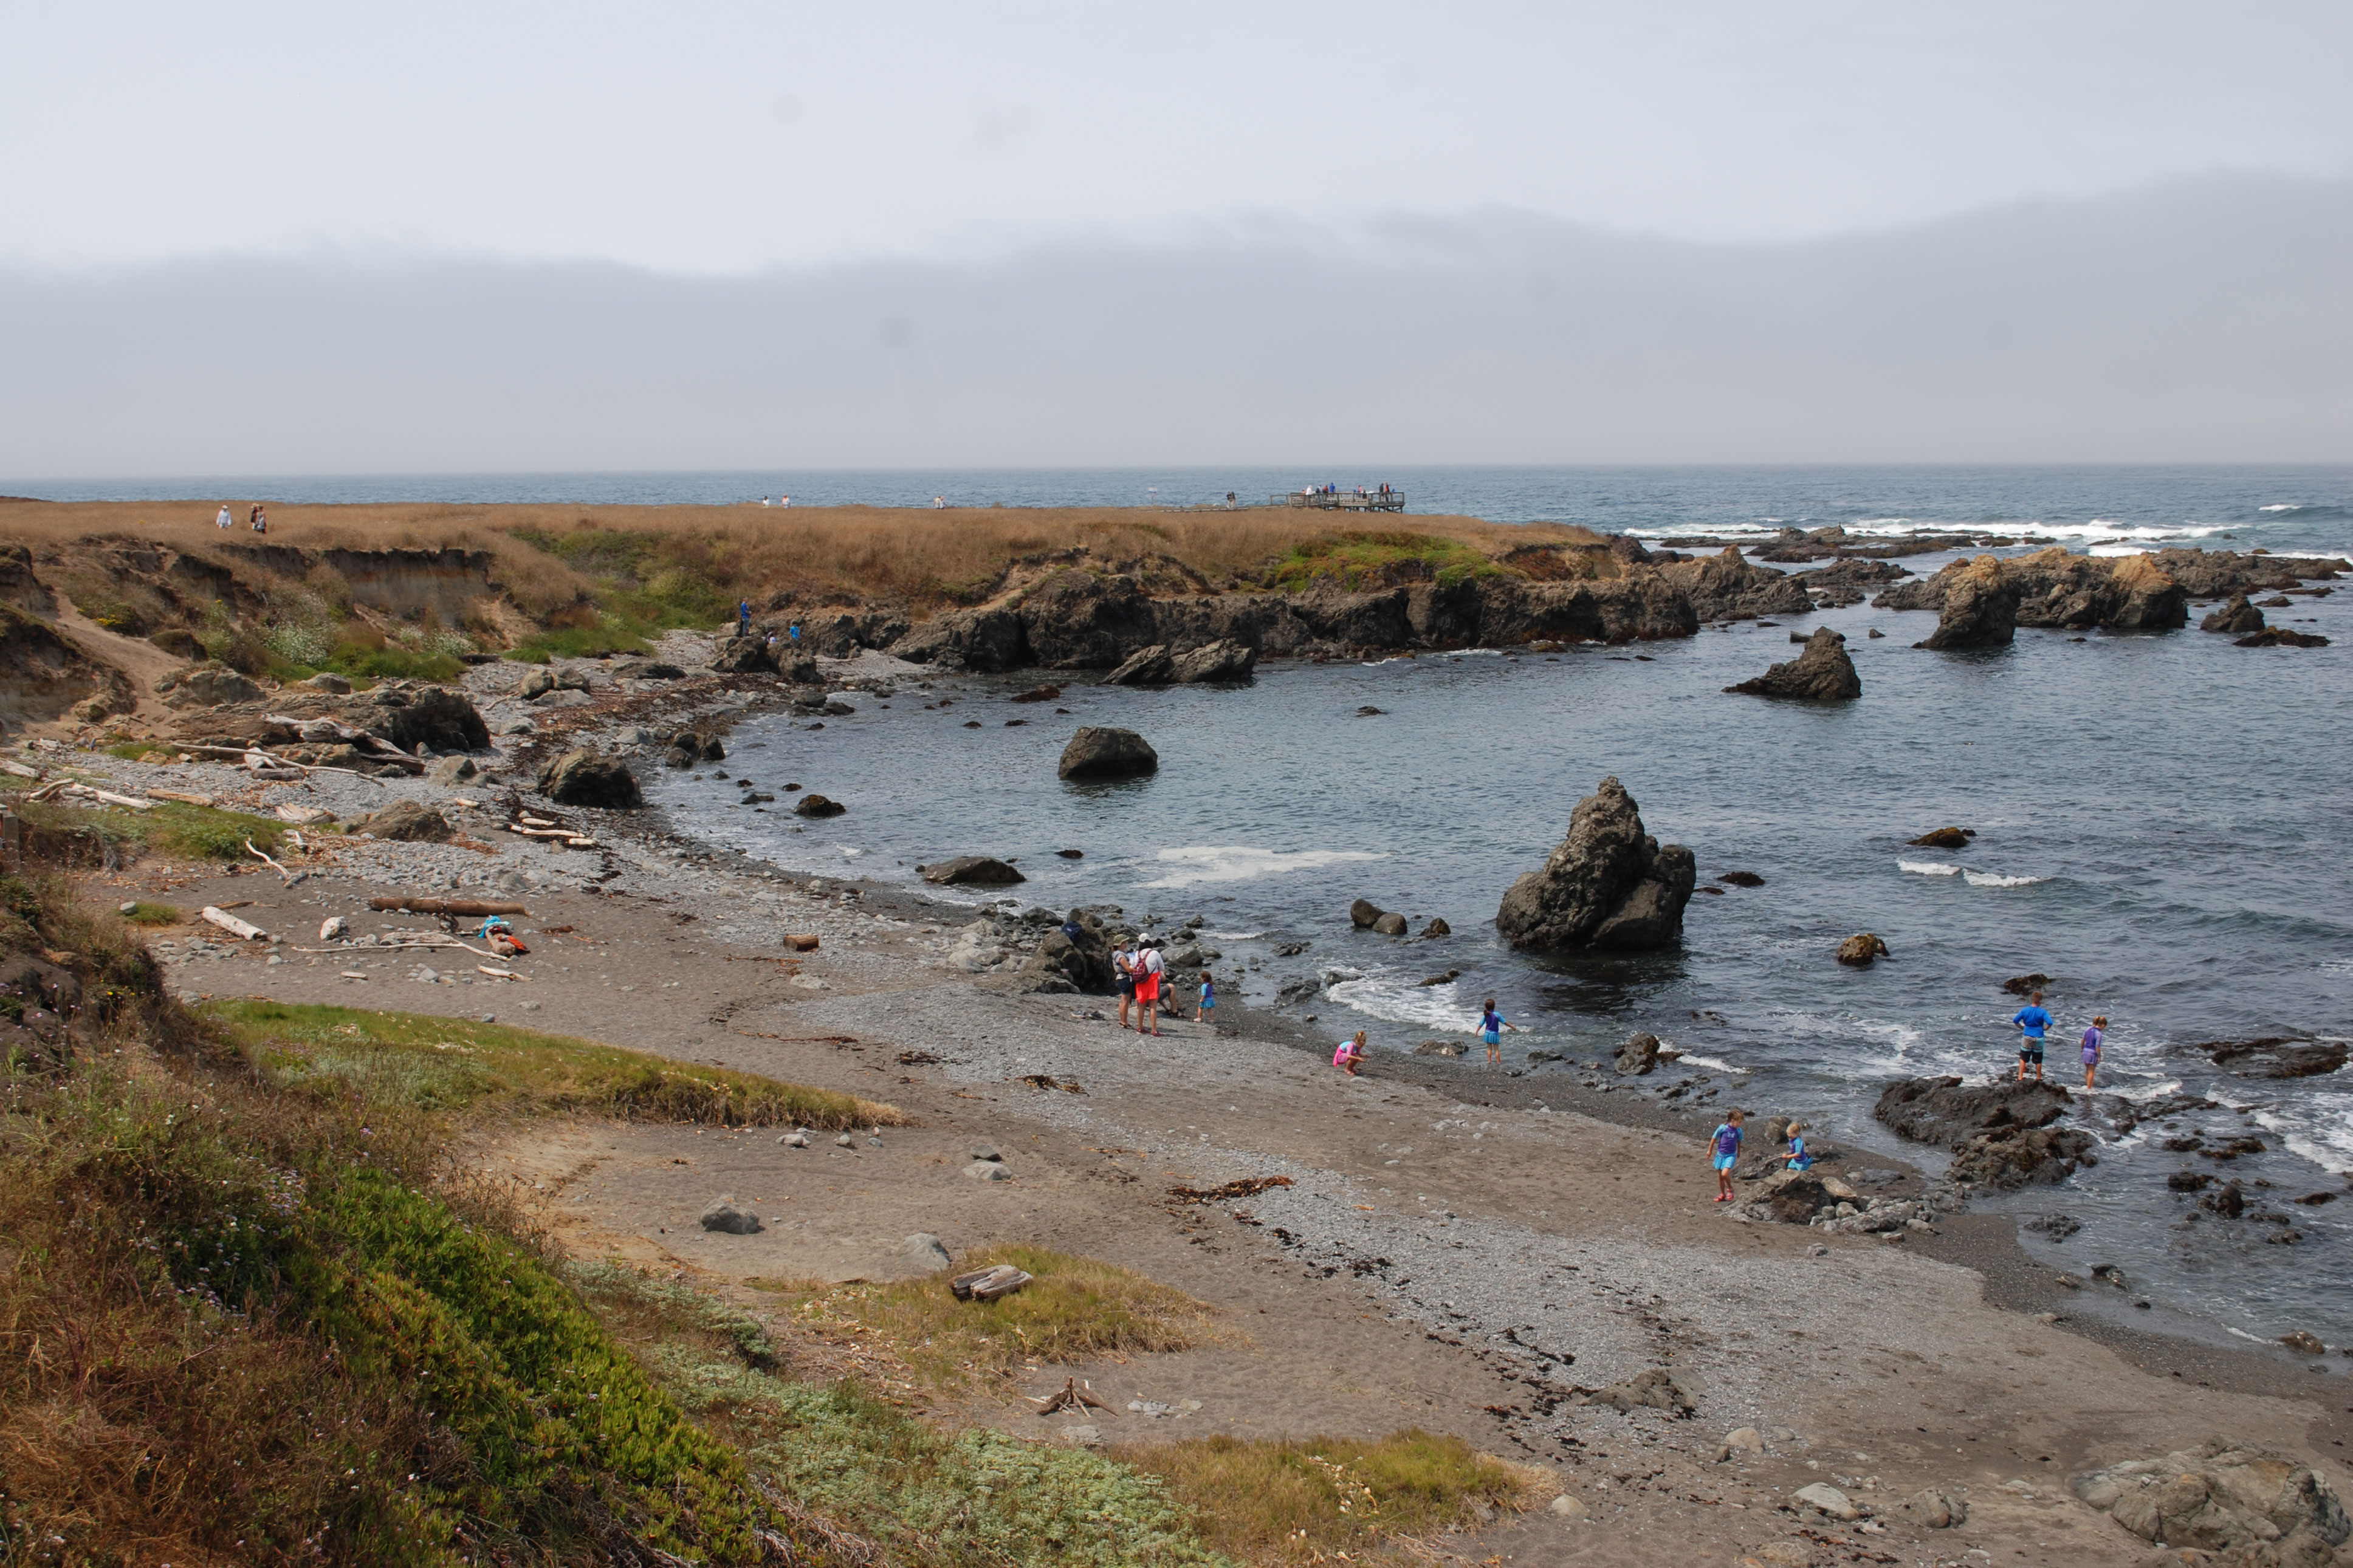 Laguna Point at MacKerricher State Park, Mendocino County, CA